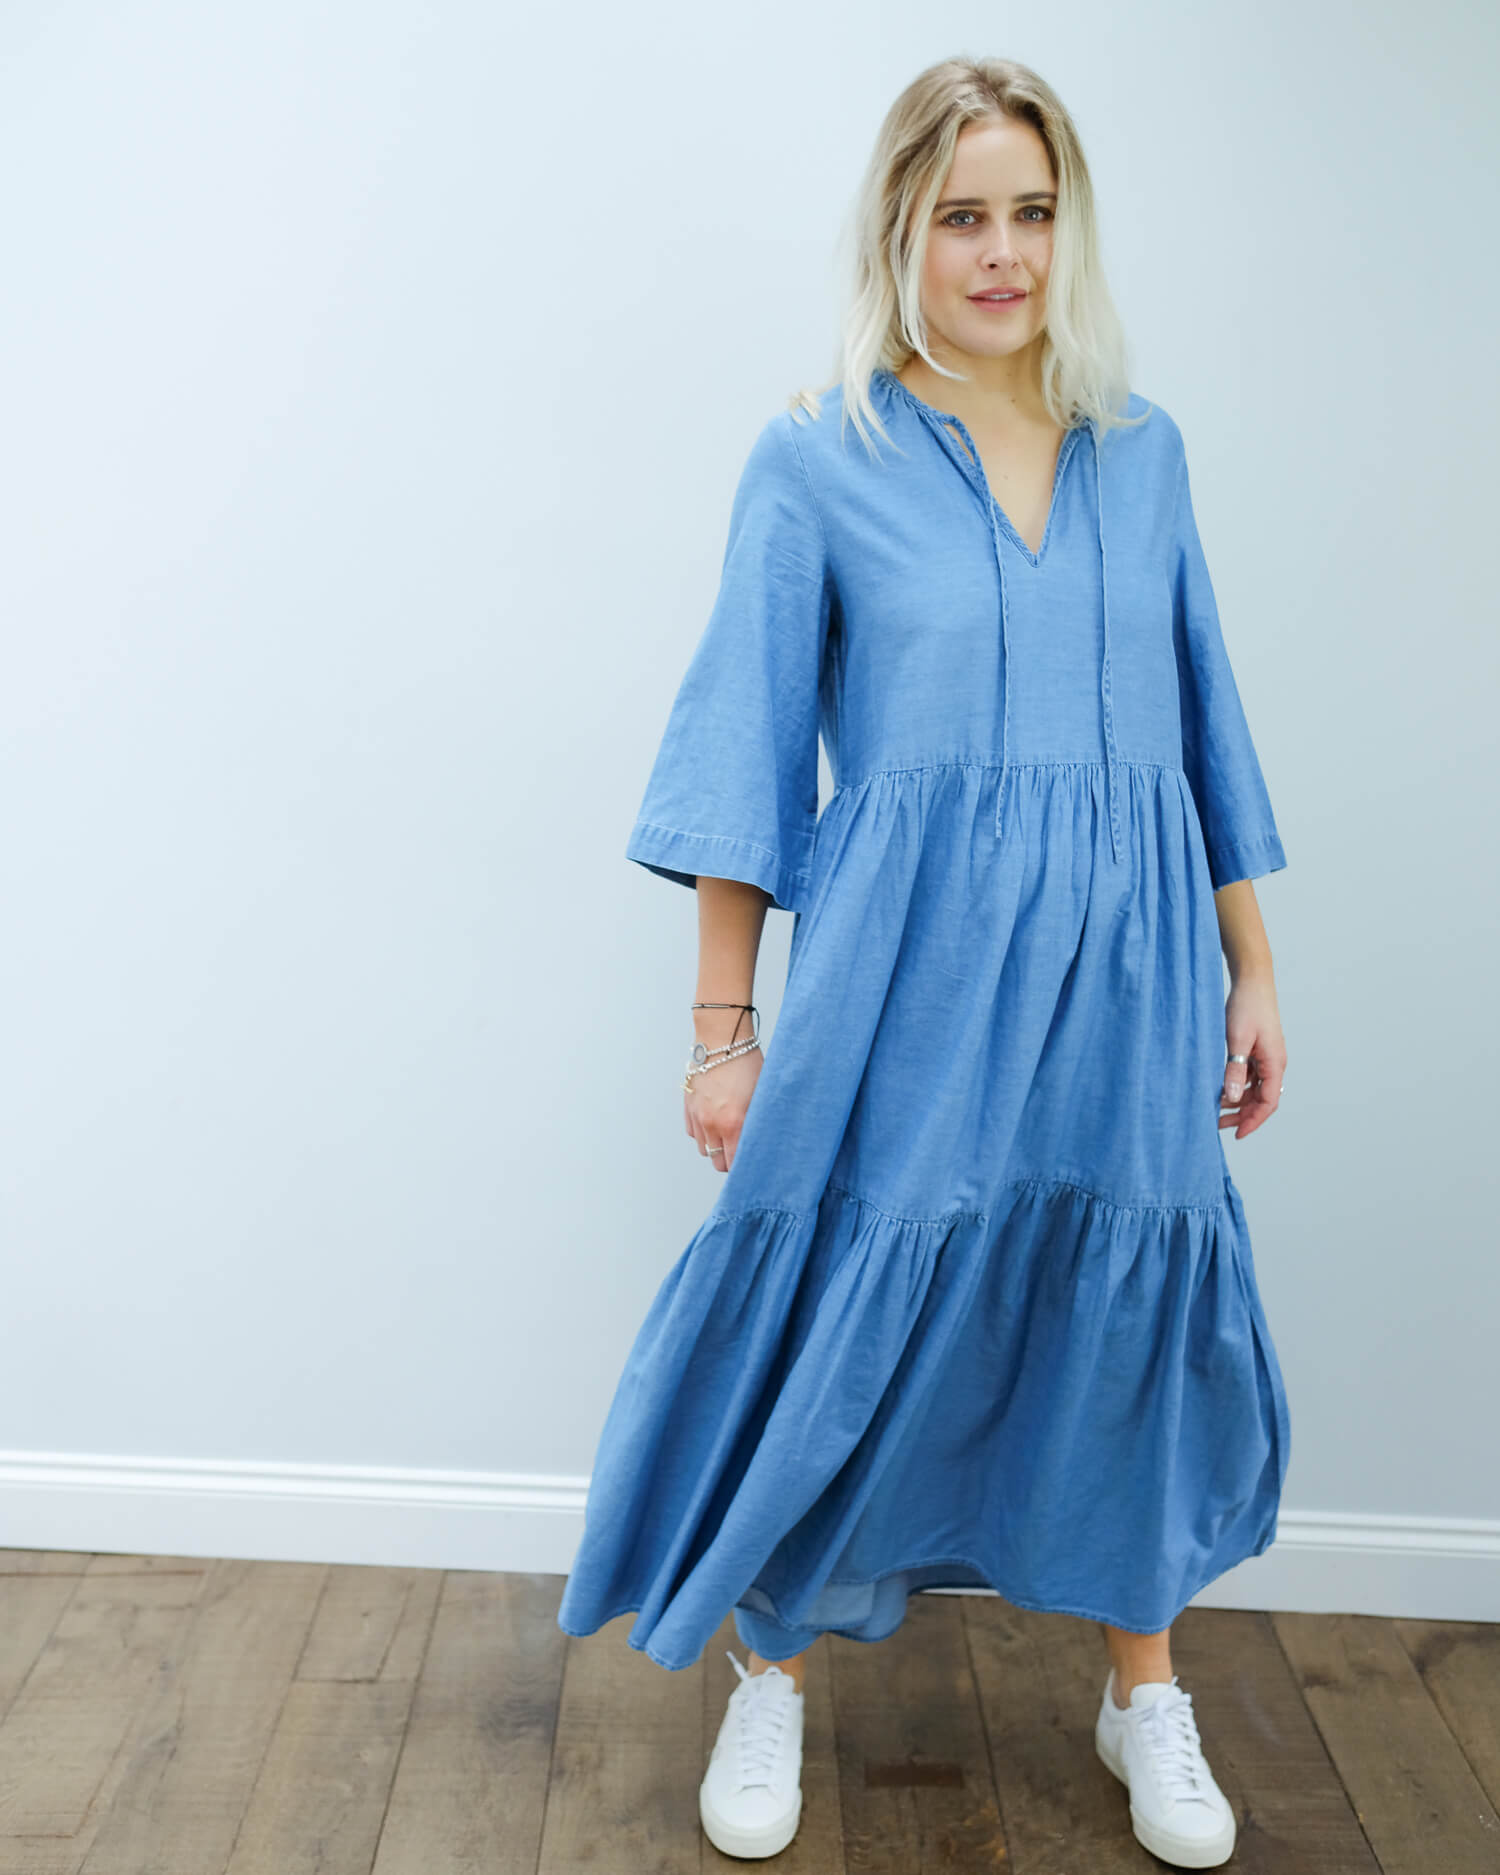 SLF Joy ankle dress in blue